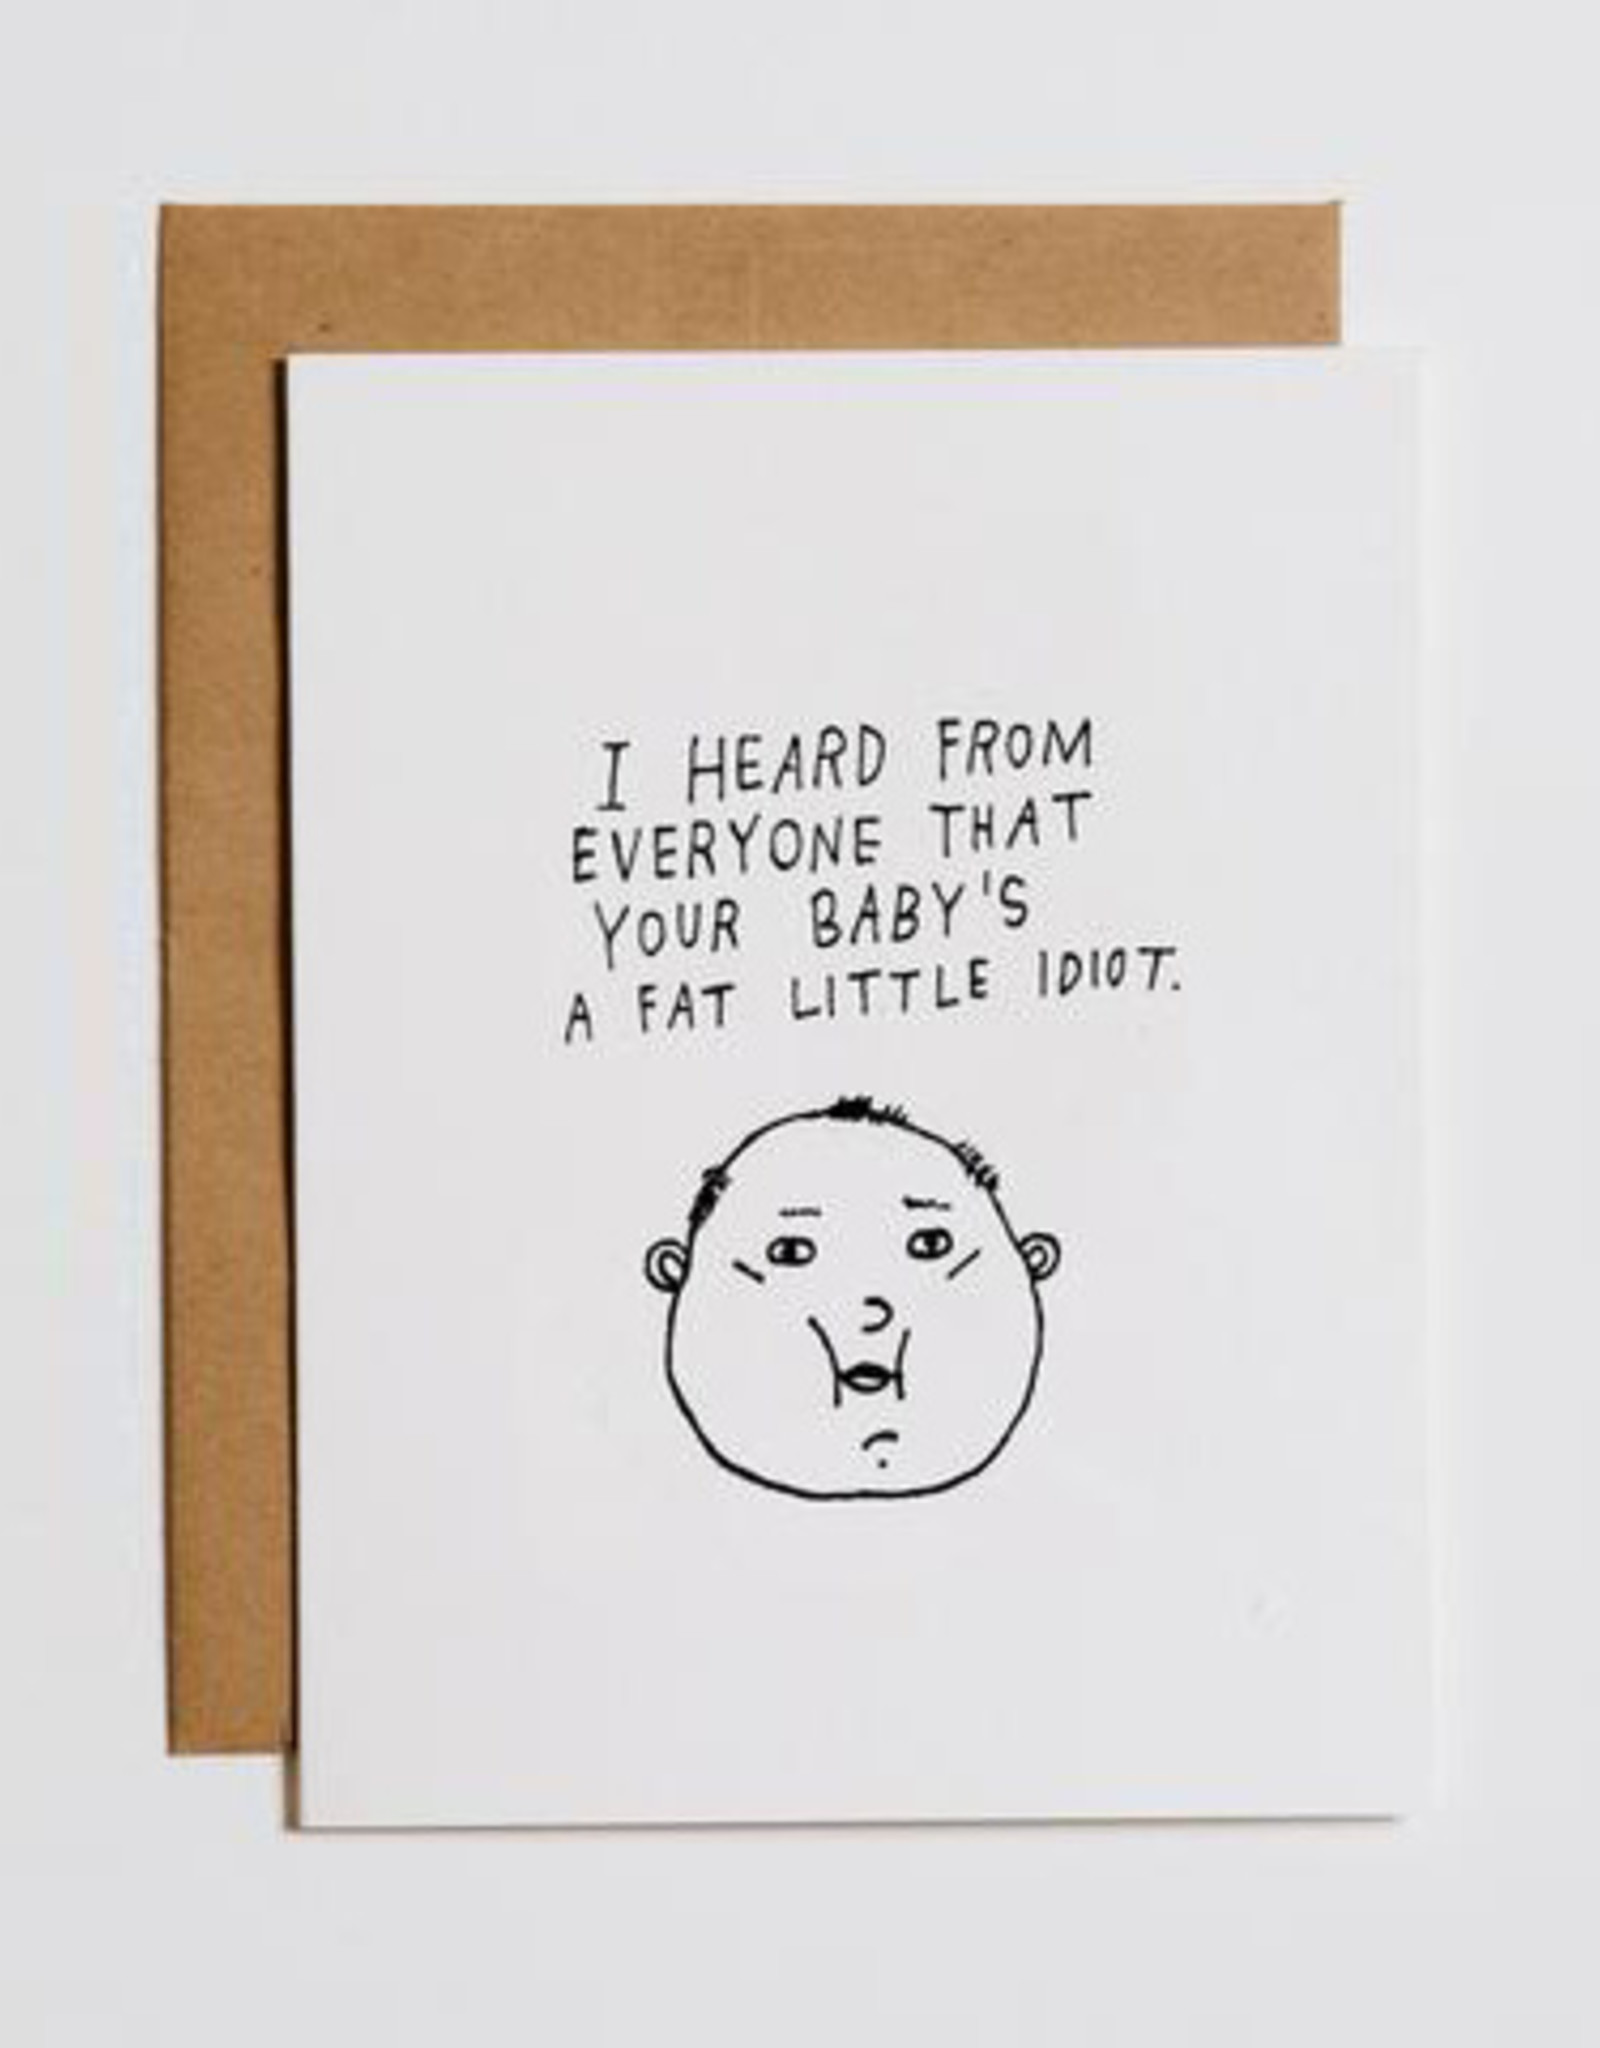 I Heard Your Baby is a Little Fat Idiot Greeting Card